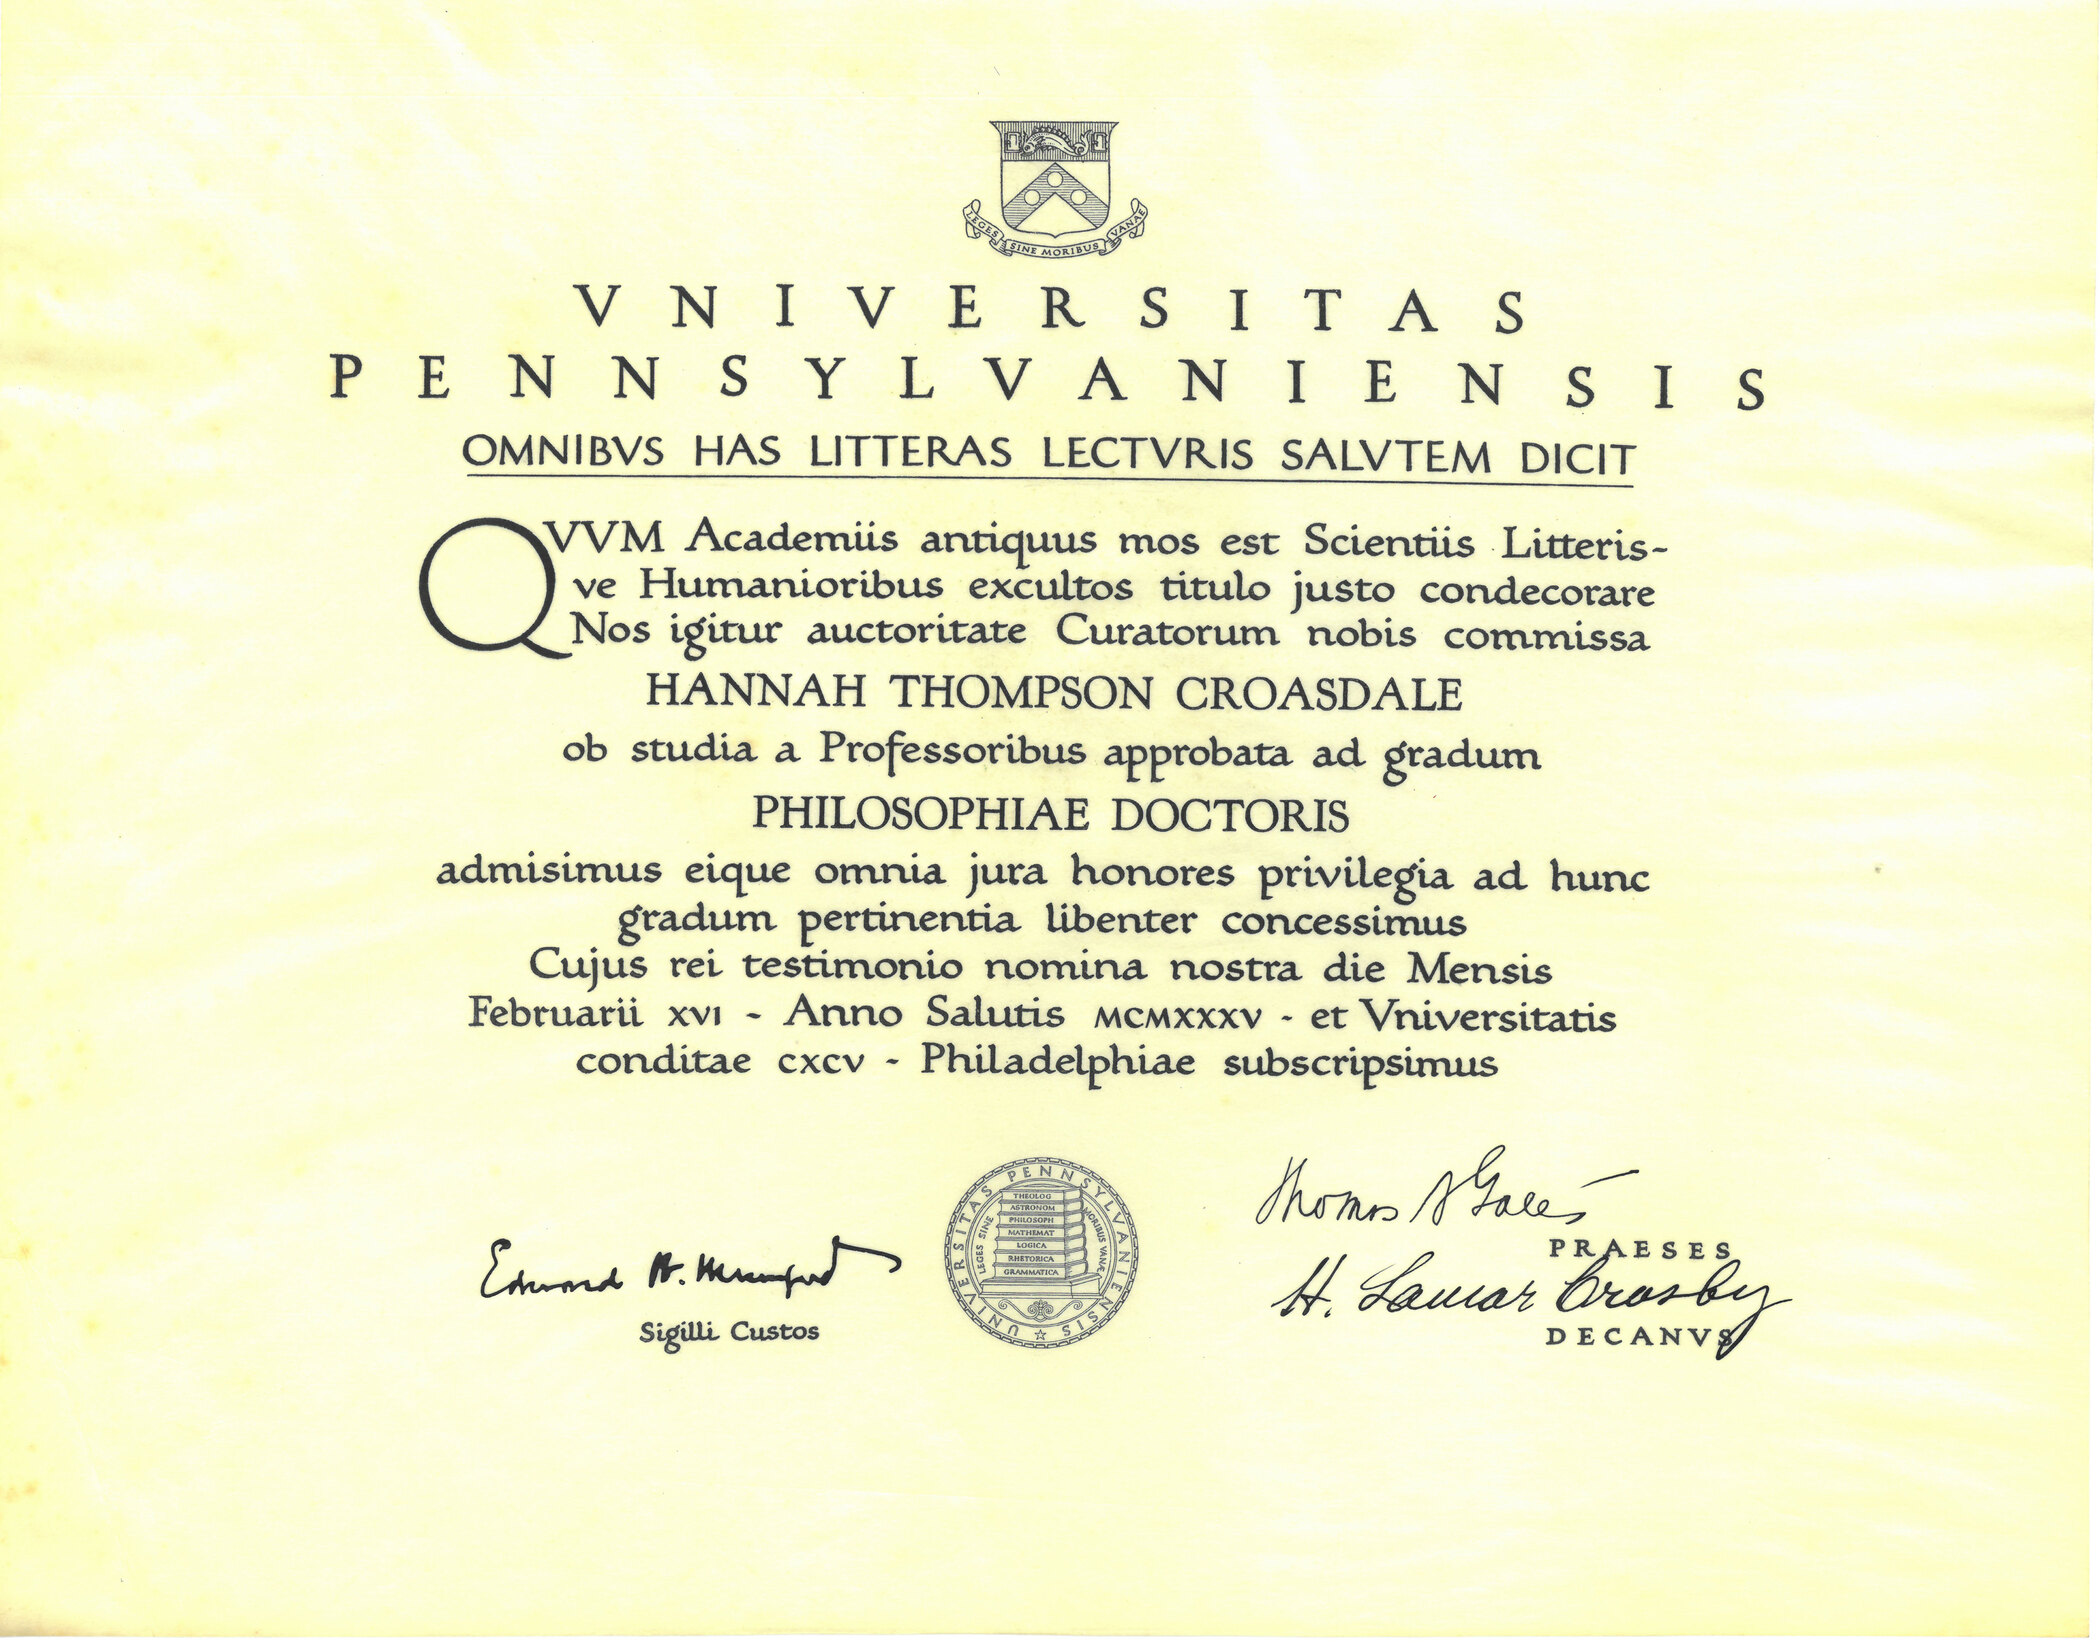 Hannah Croasdale's doctorate degree from the University of Pennsylvania, awarded in 1935.